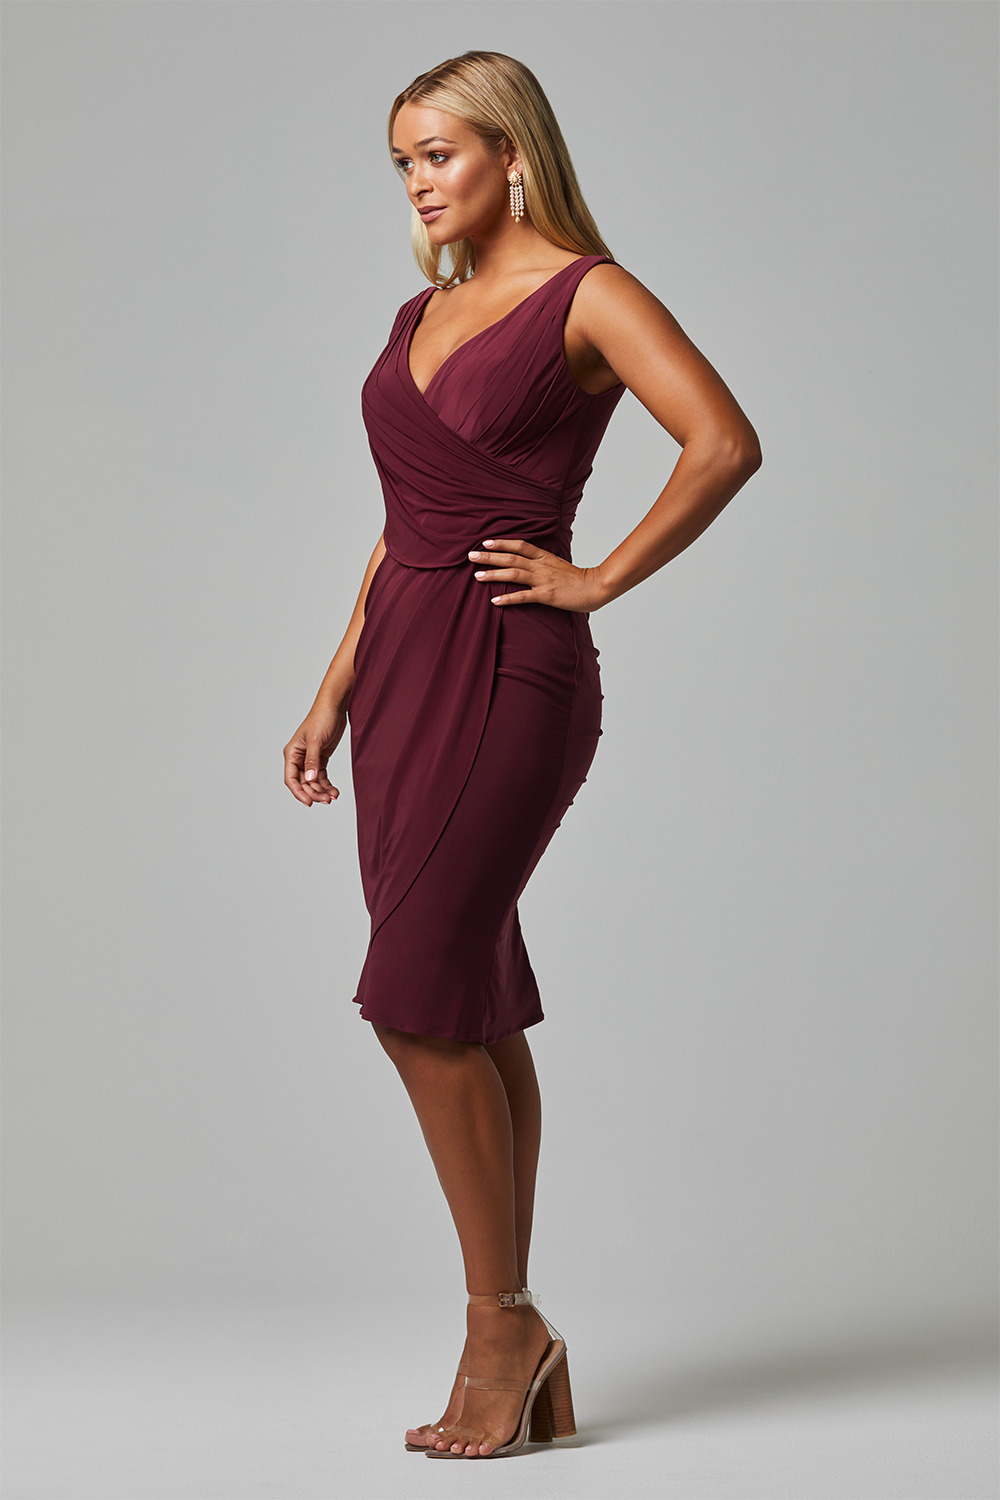 TO826 delta bridesmaid dress side wine